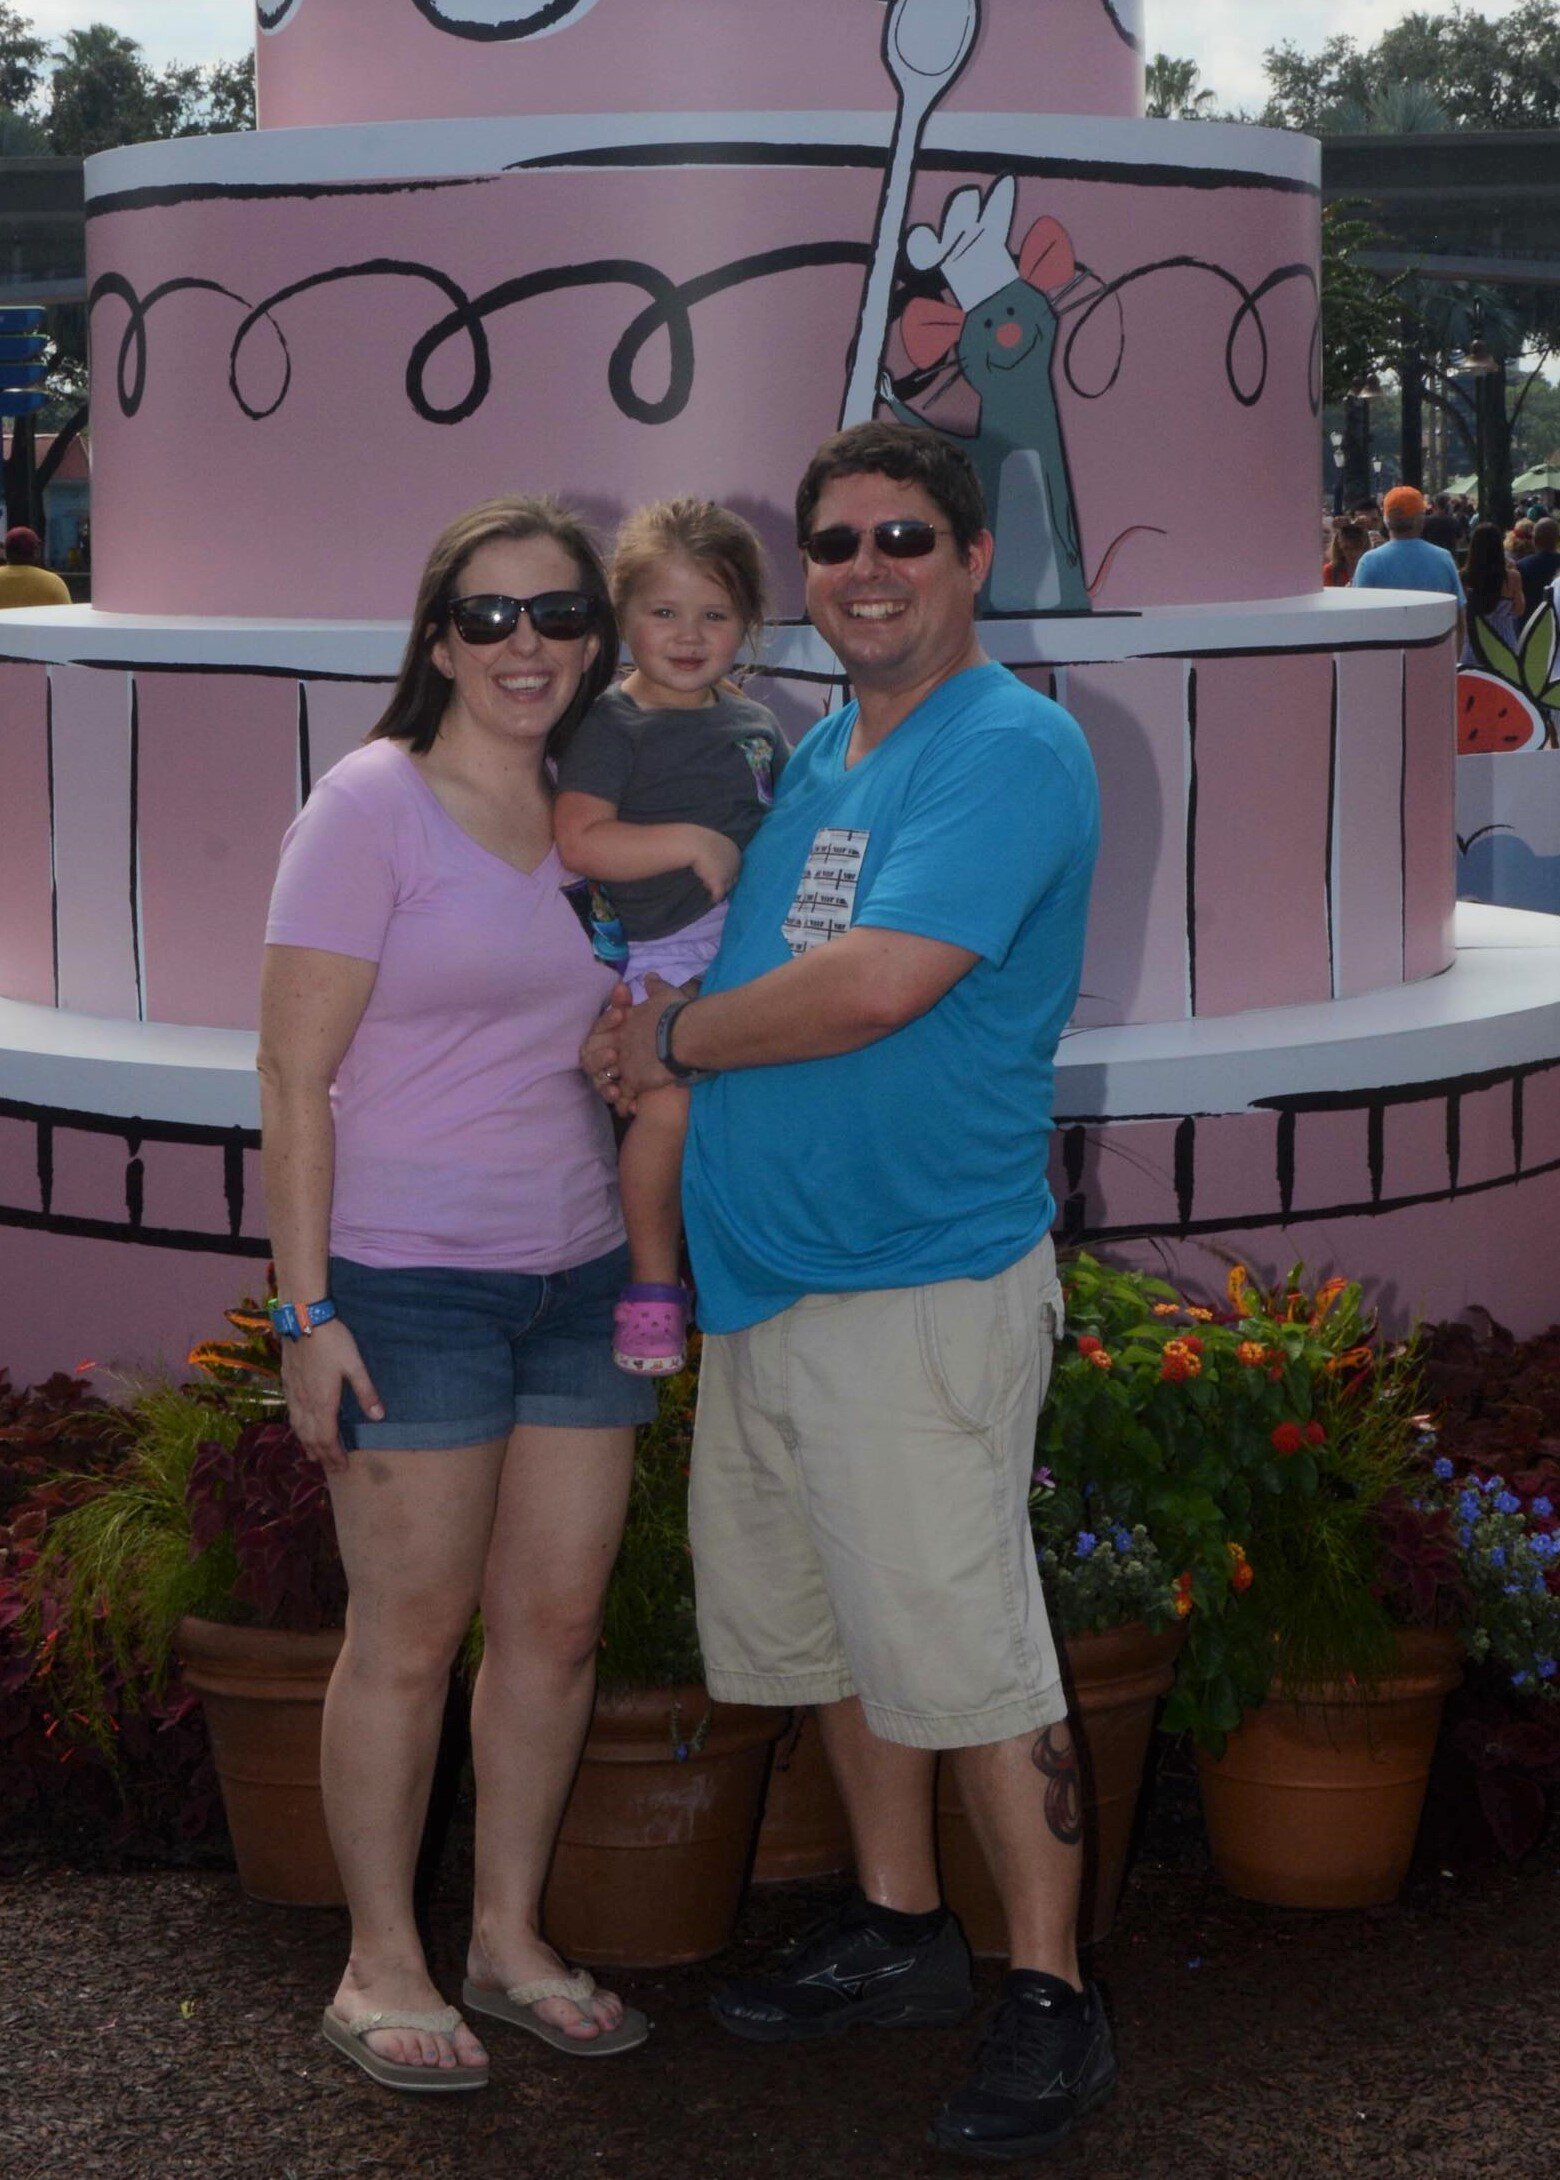 Spending time at Epcot